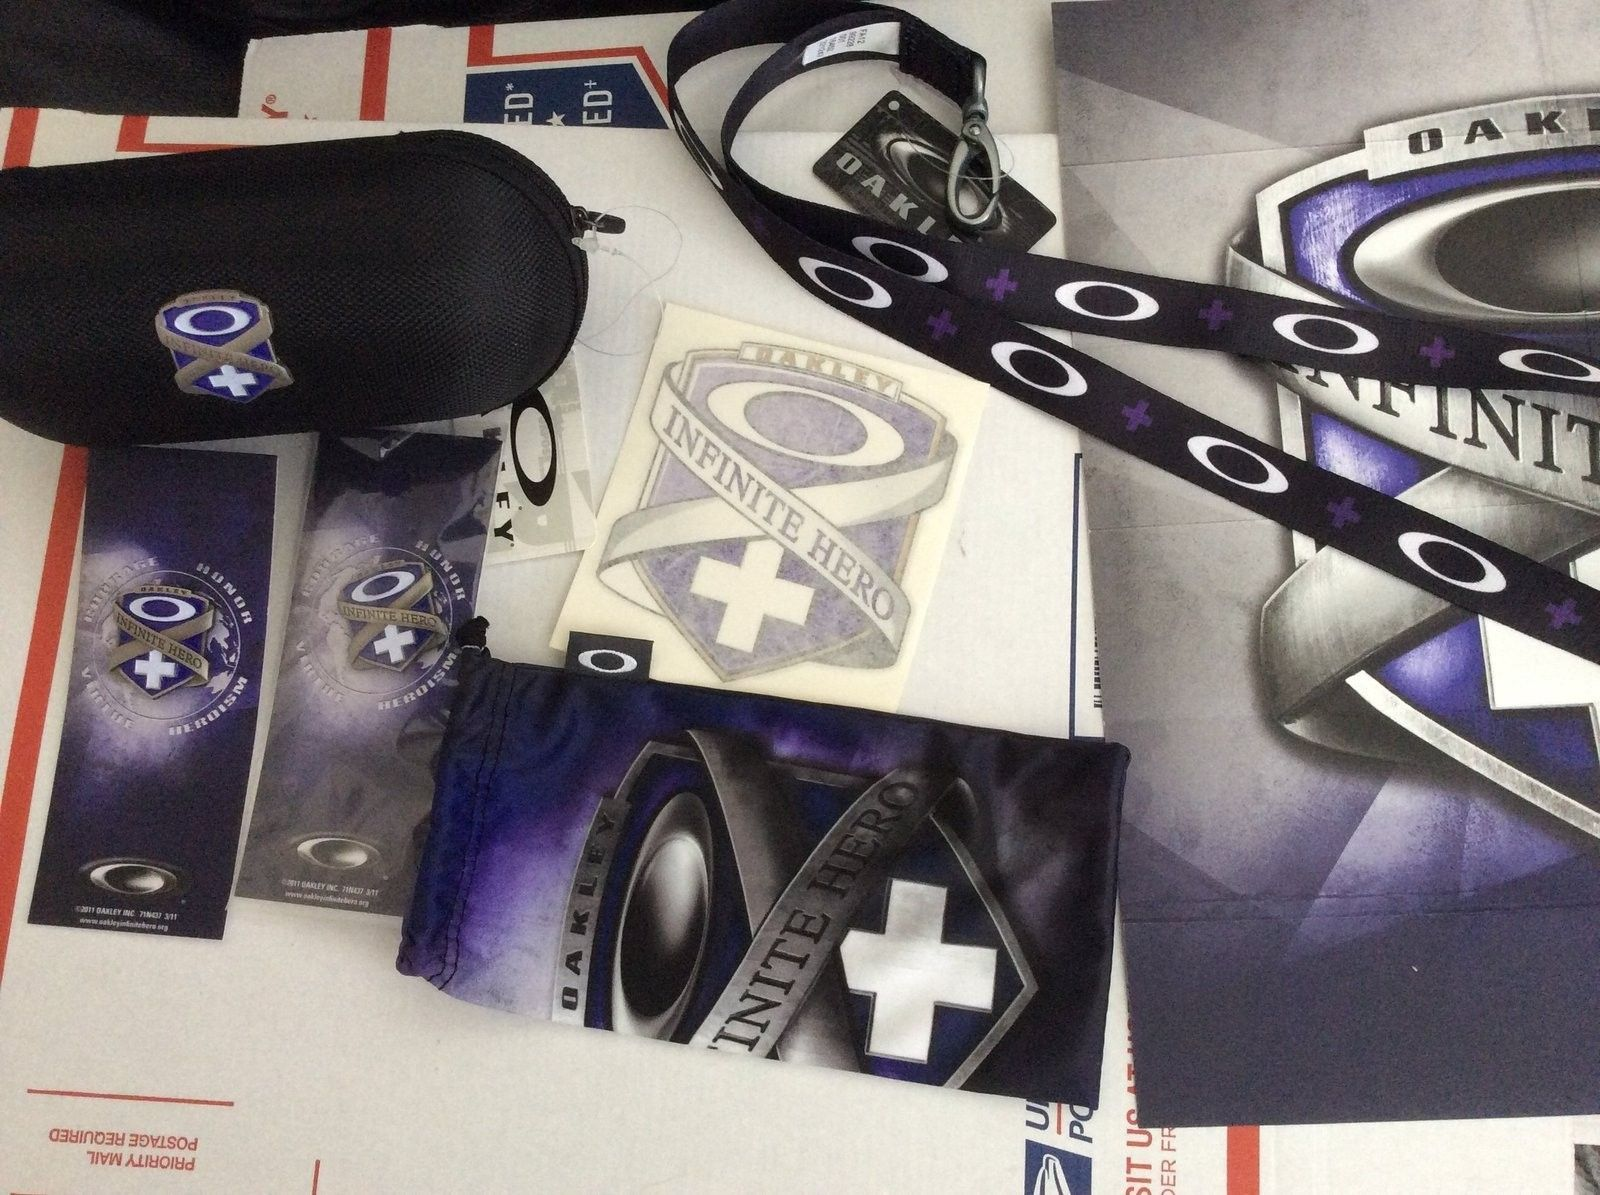 Infinite Hero lanyard and other stuff - image.jpg